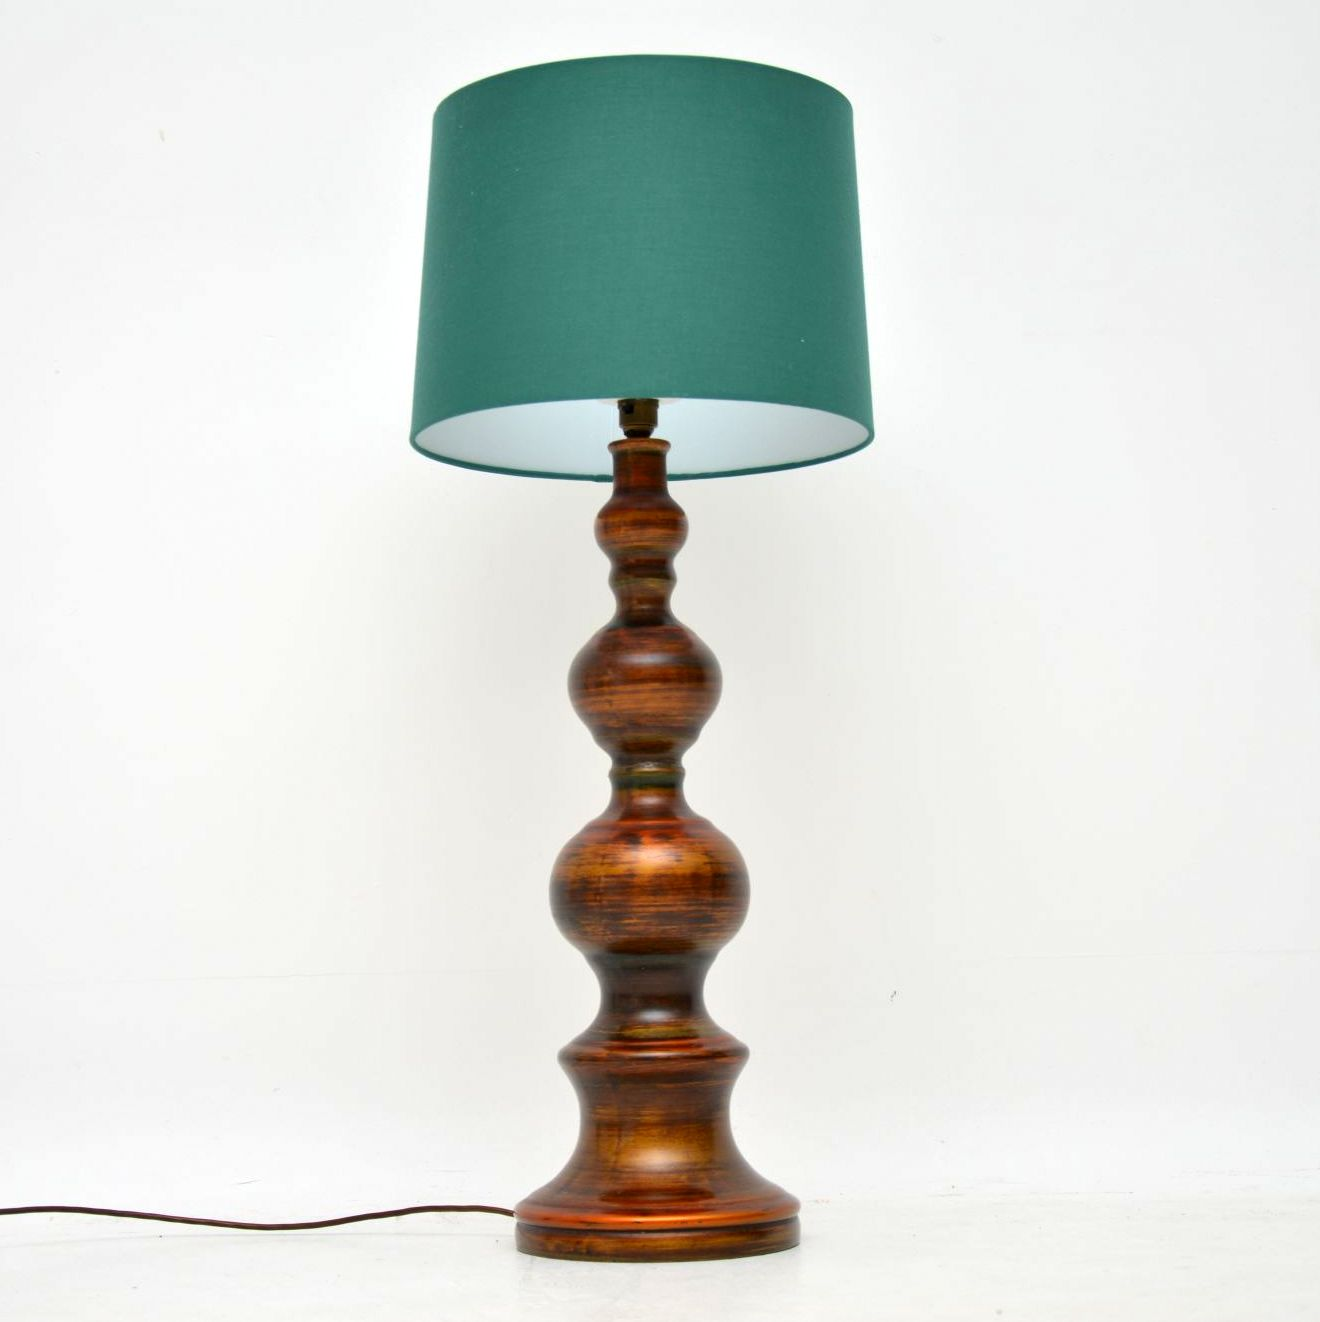 retro vintage ceramic table lamp